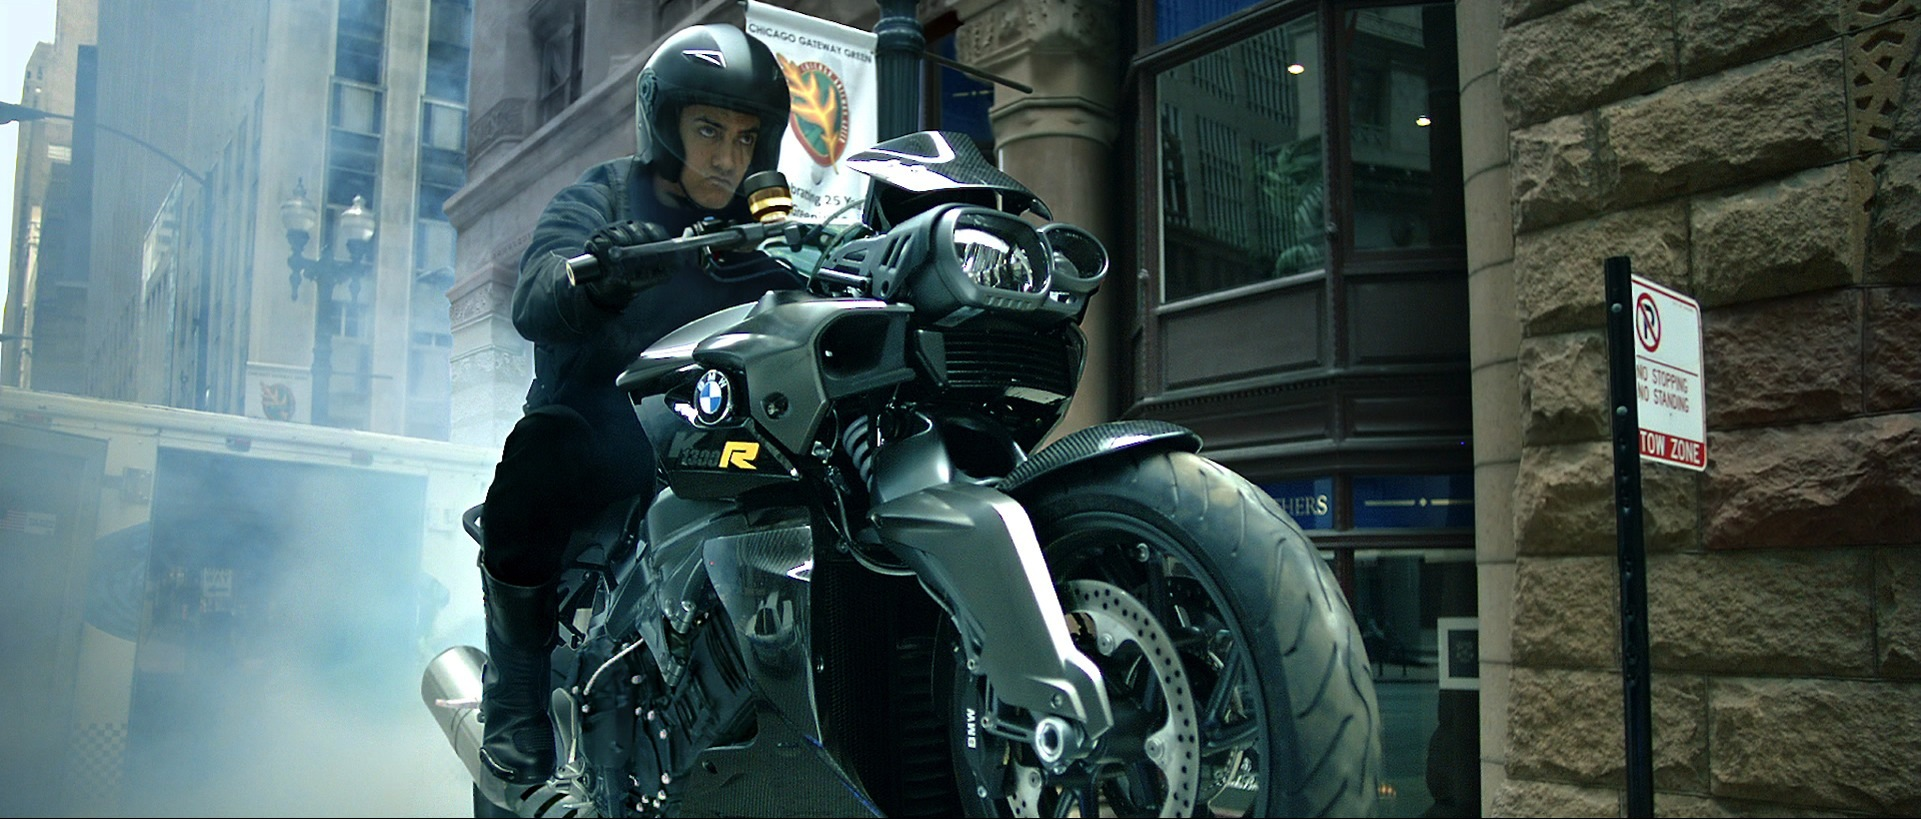 Bmw Motorrad Sponsors Action Thriller Dhoom 3 Autoevolution